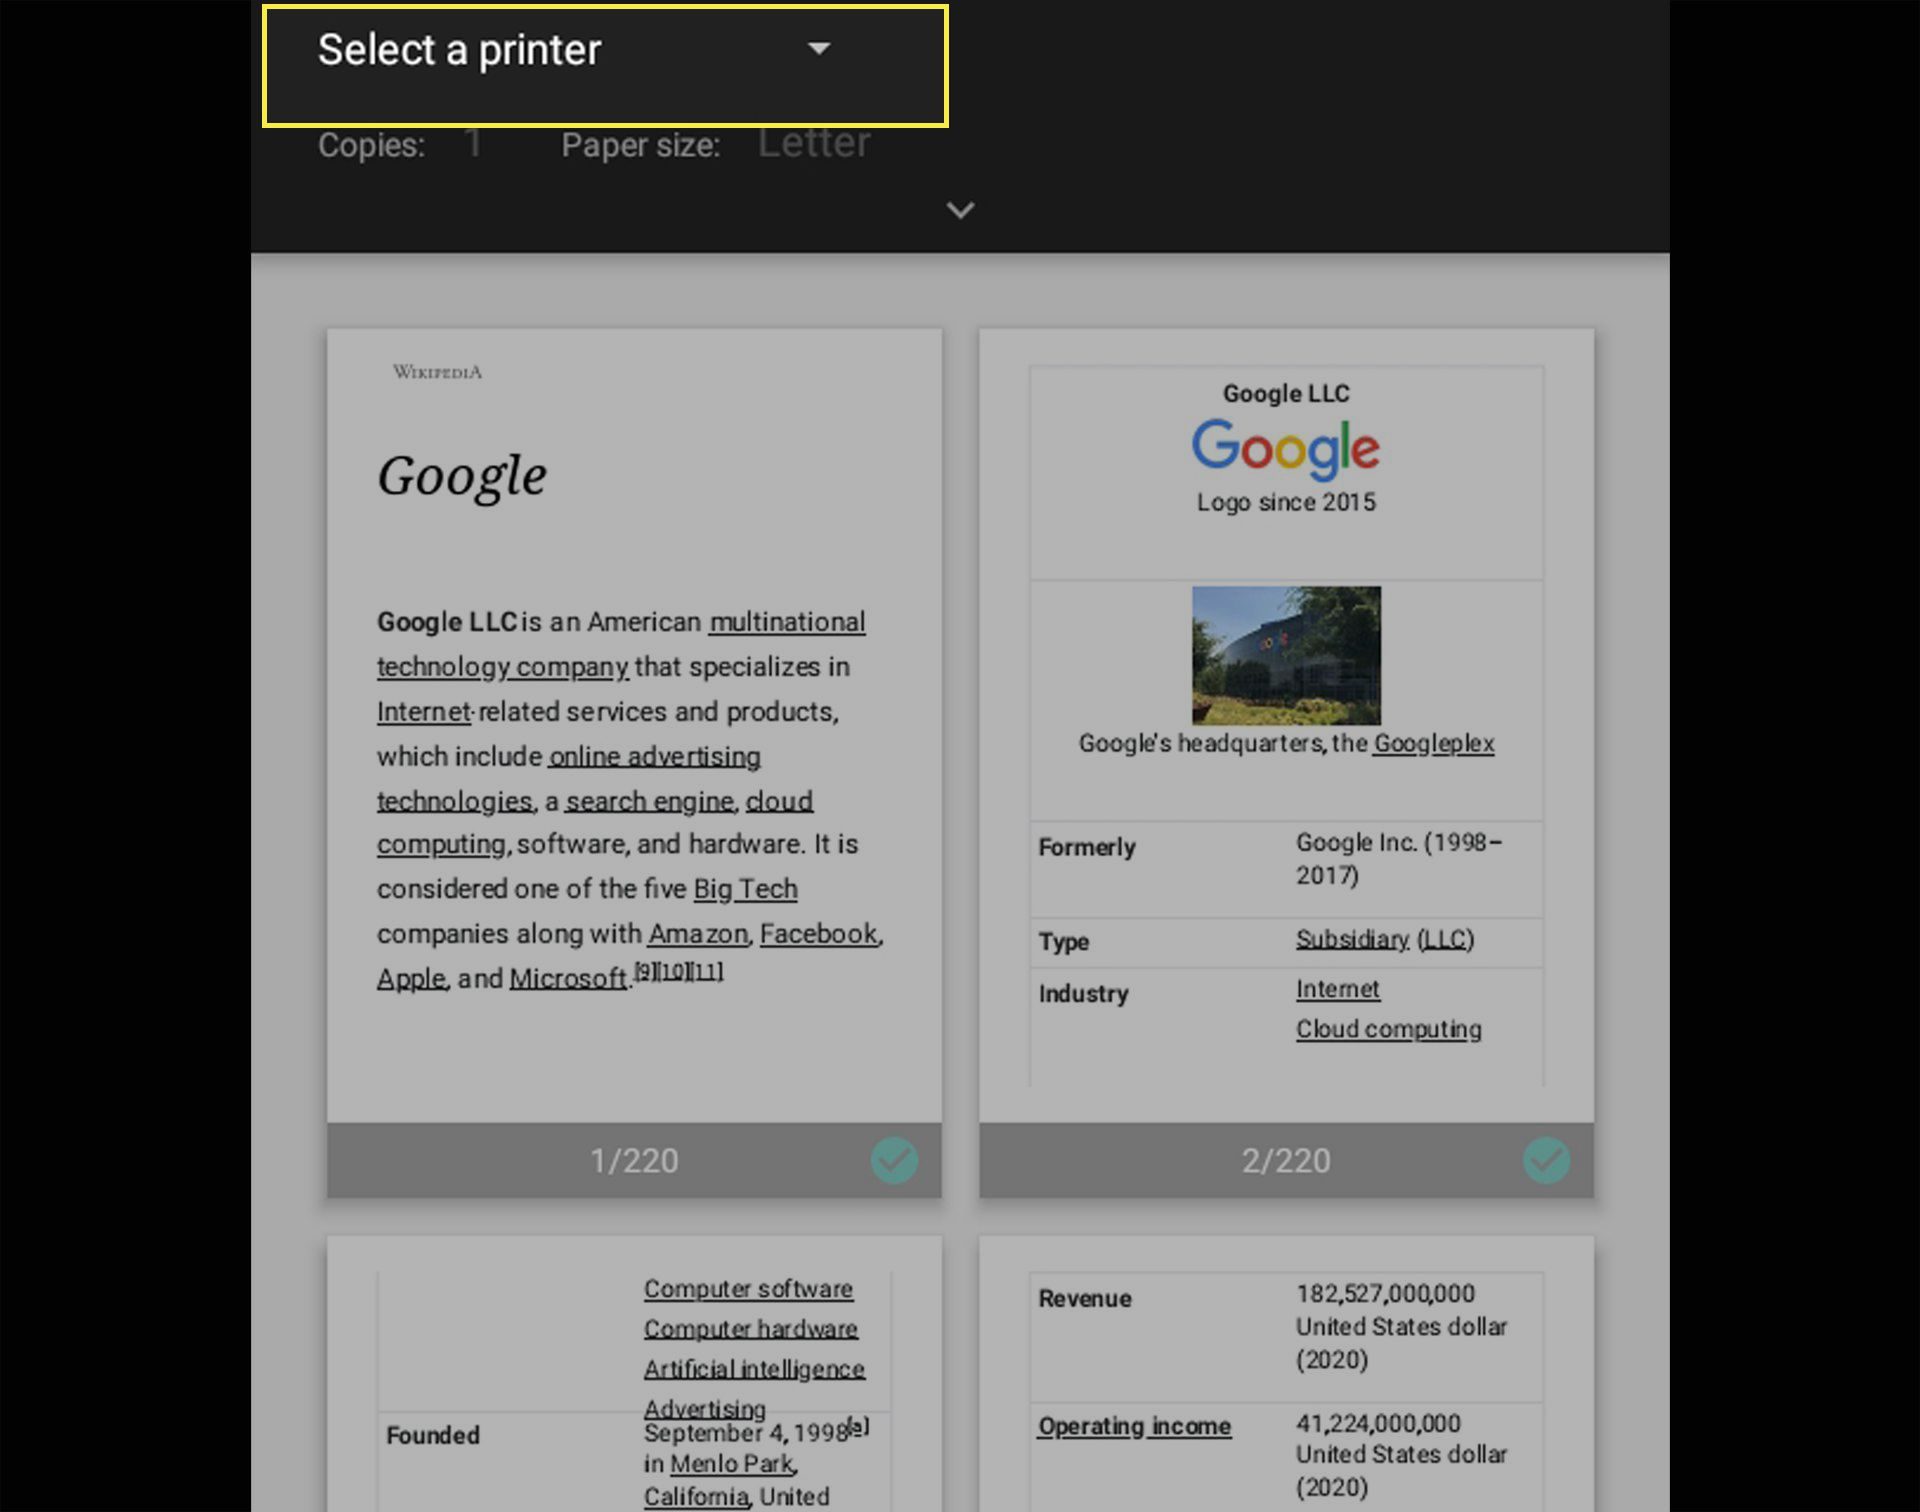 Android printer preview on an Android tablet with Select a Printer highlighted